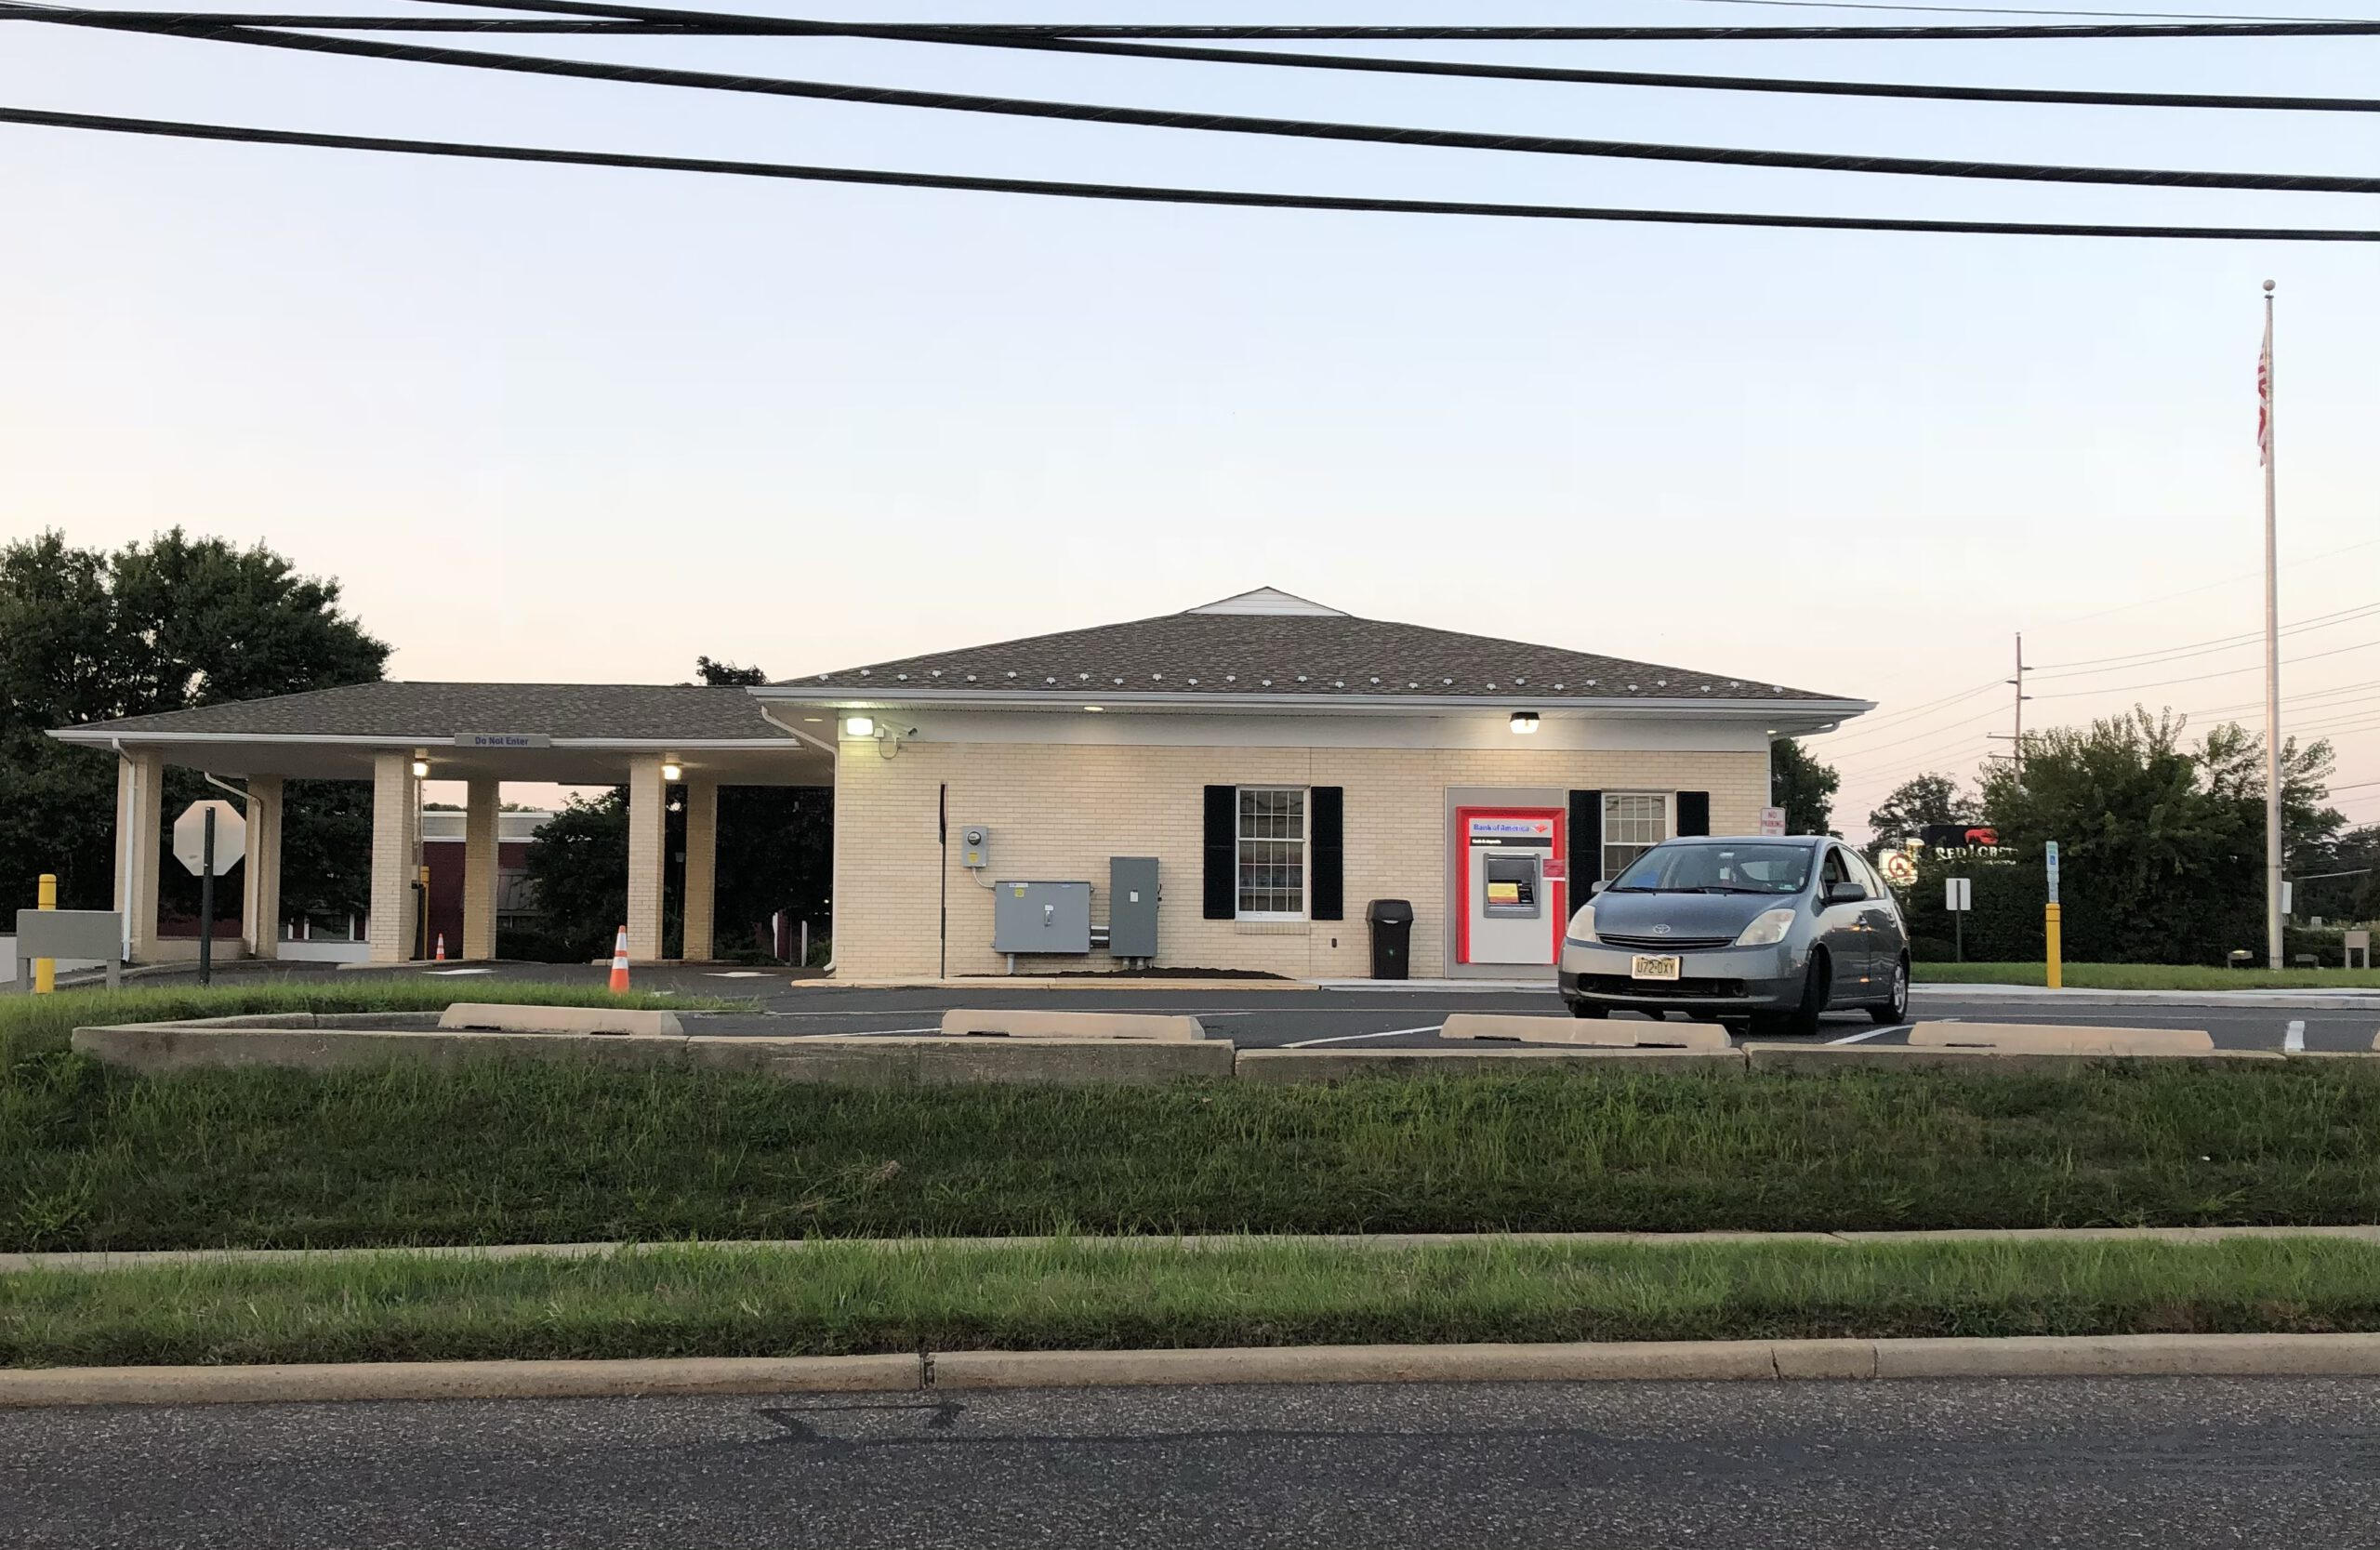 TOMS RIVER: Starbucks With Drive Through to Occupy Former Bank on Hooper